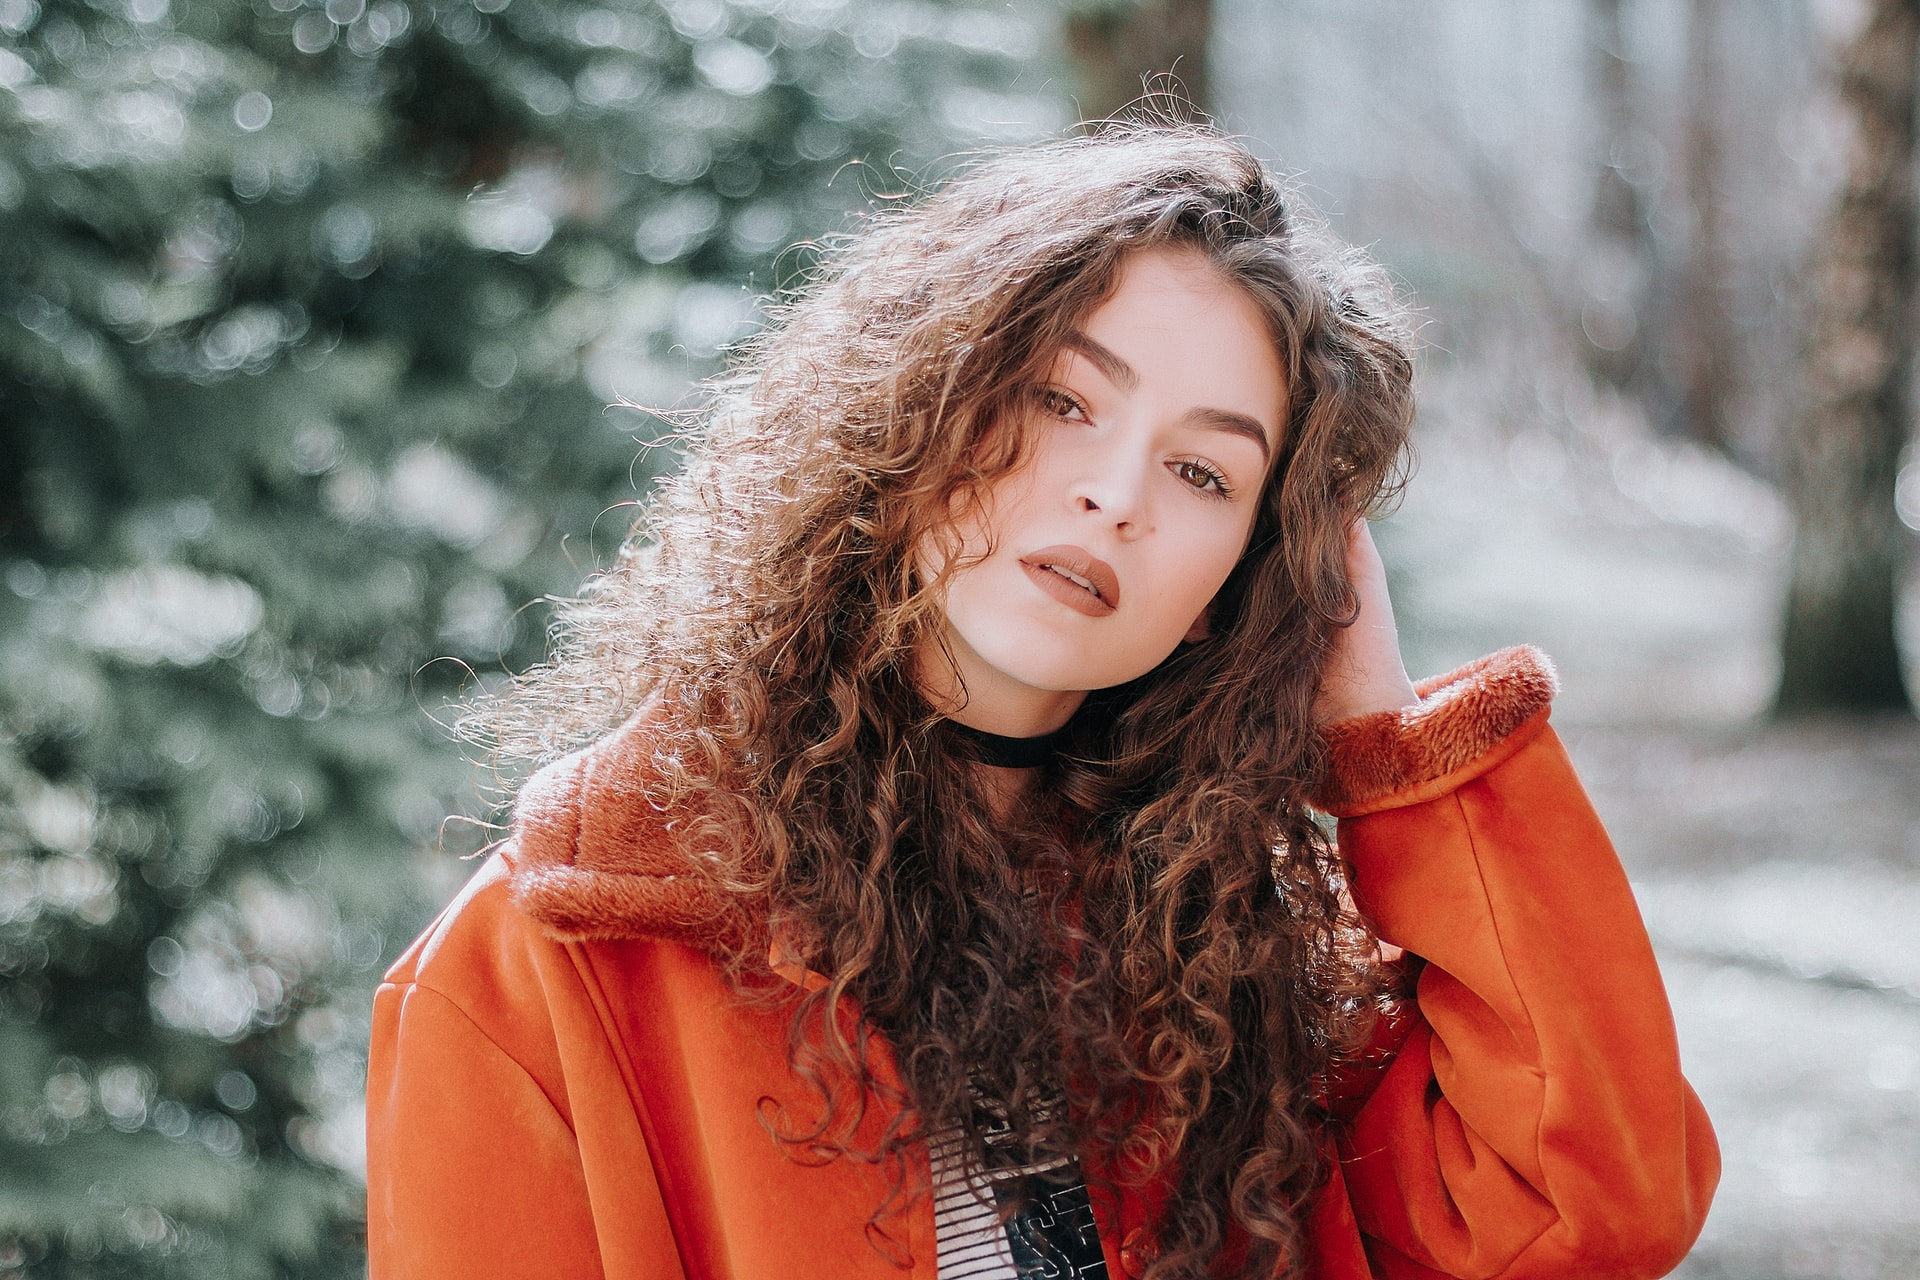 Person With Curly Hair Faces Camera, Hand On Back Of Head, Against Wintery Background